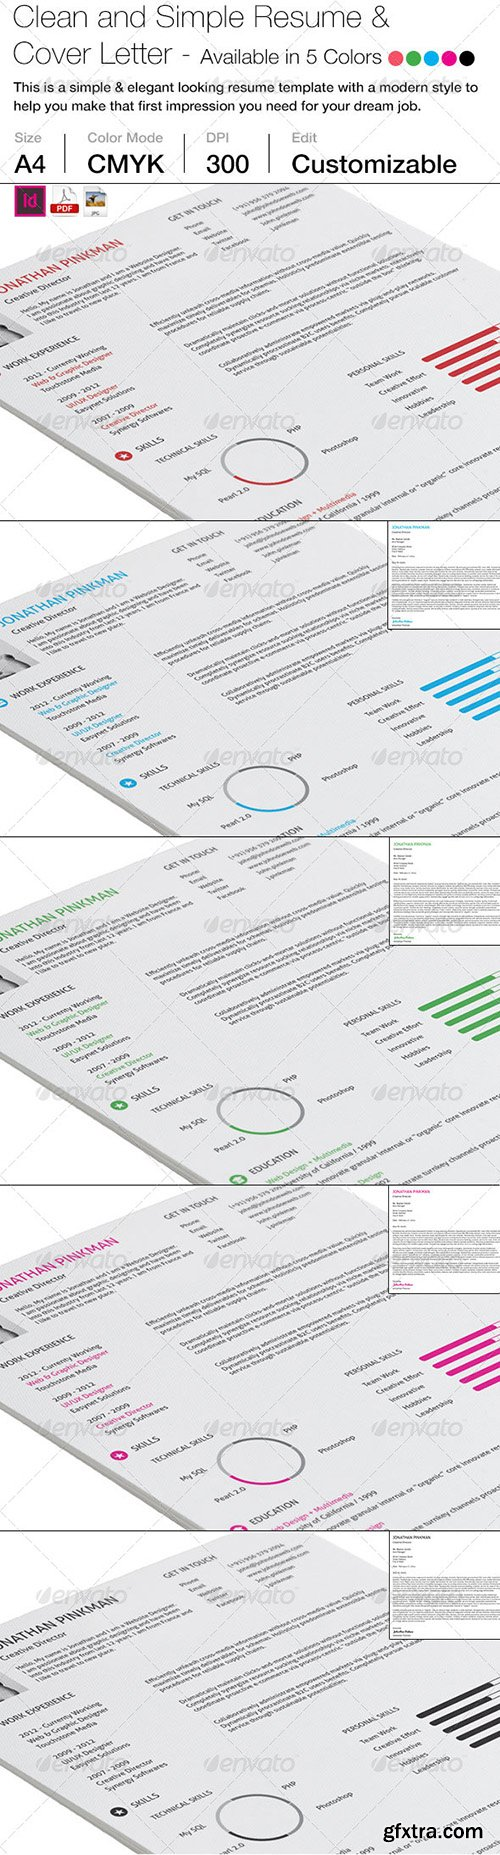 Graphicriver 2-Piece Clean Simple Resume with Cover Letter 6925535